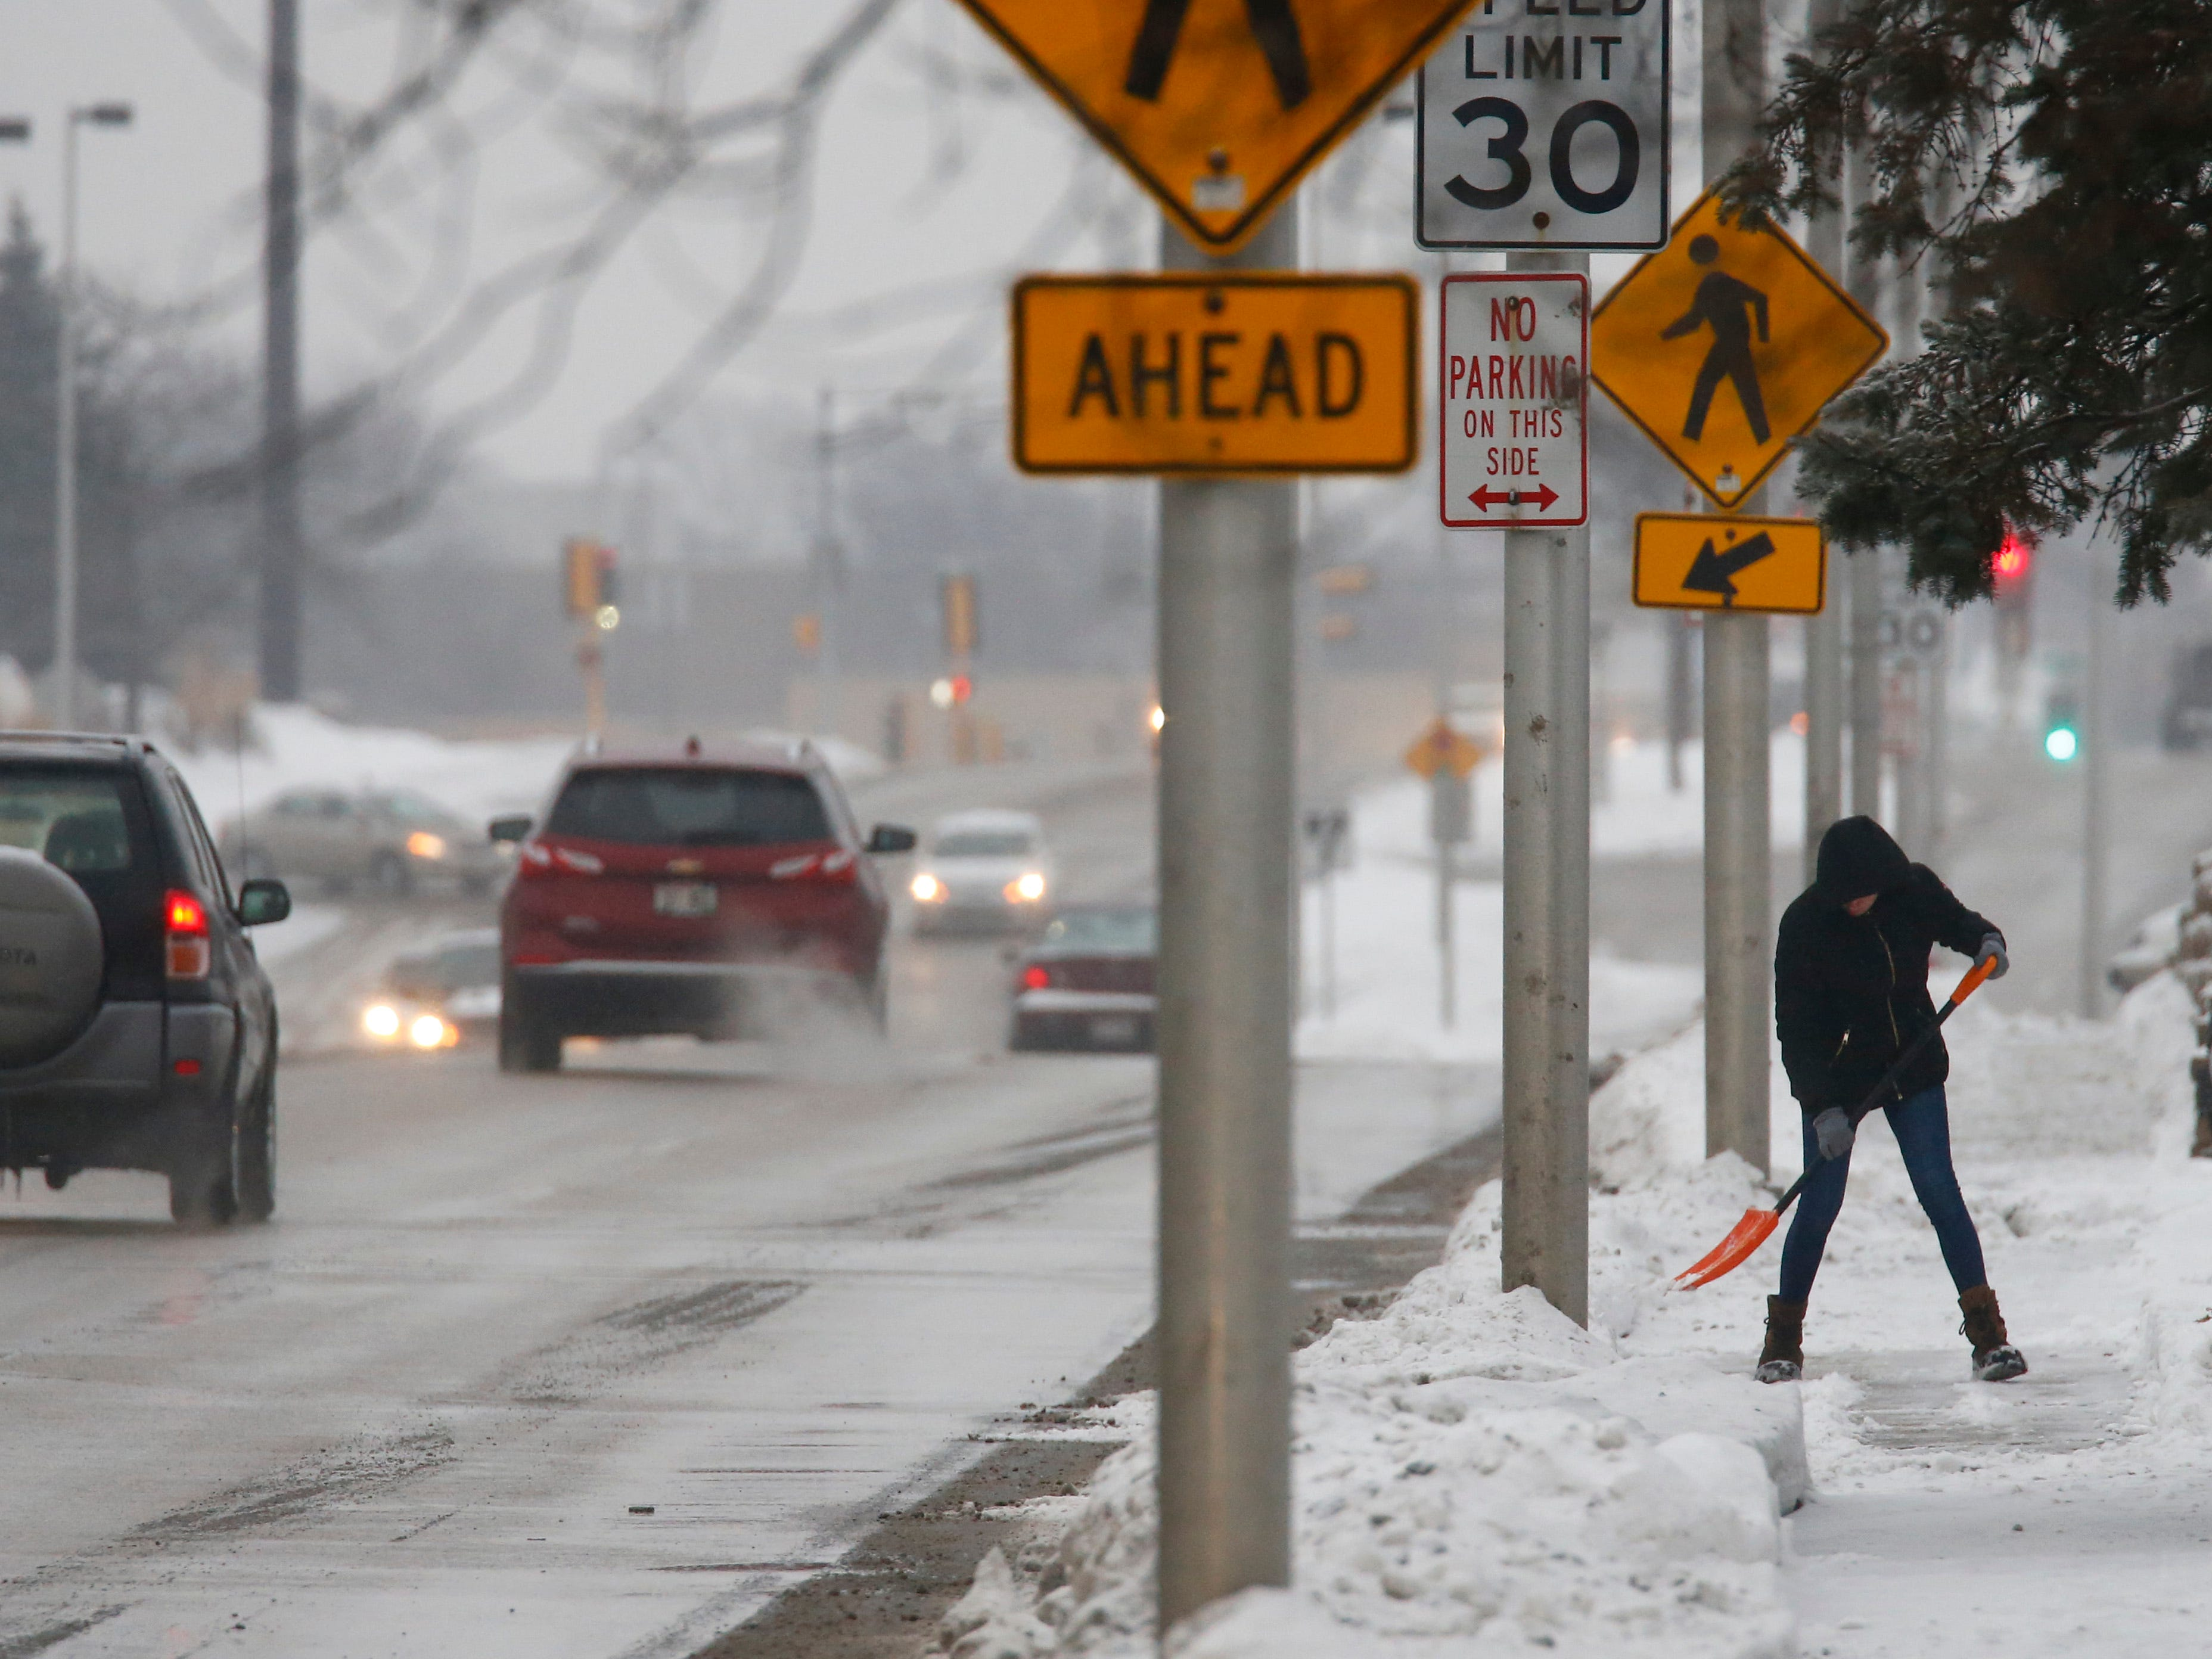 A shoveler clears an Appleton Avenue sidewalk as snow from the Jan. 22 snowstorm begins to fall.